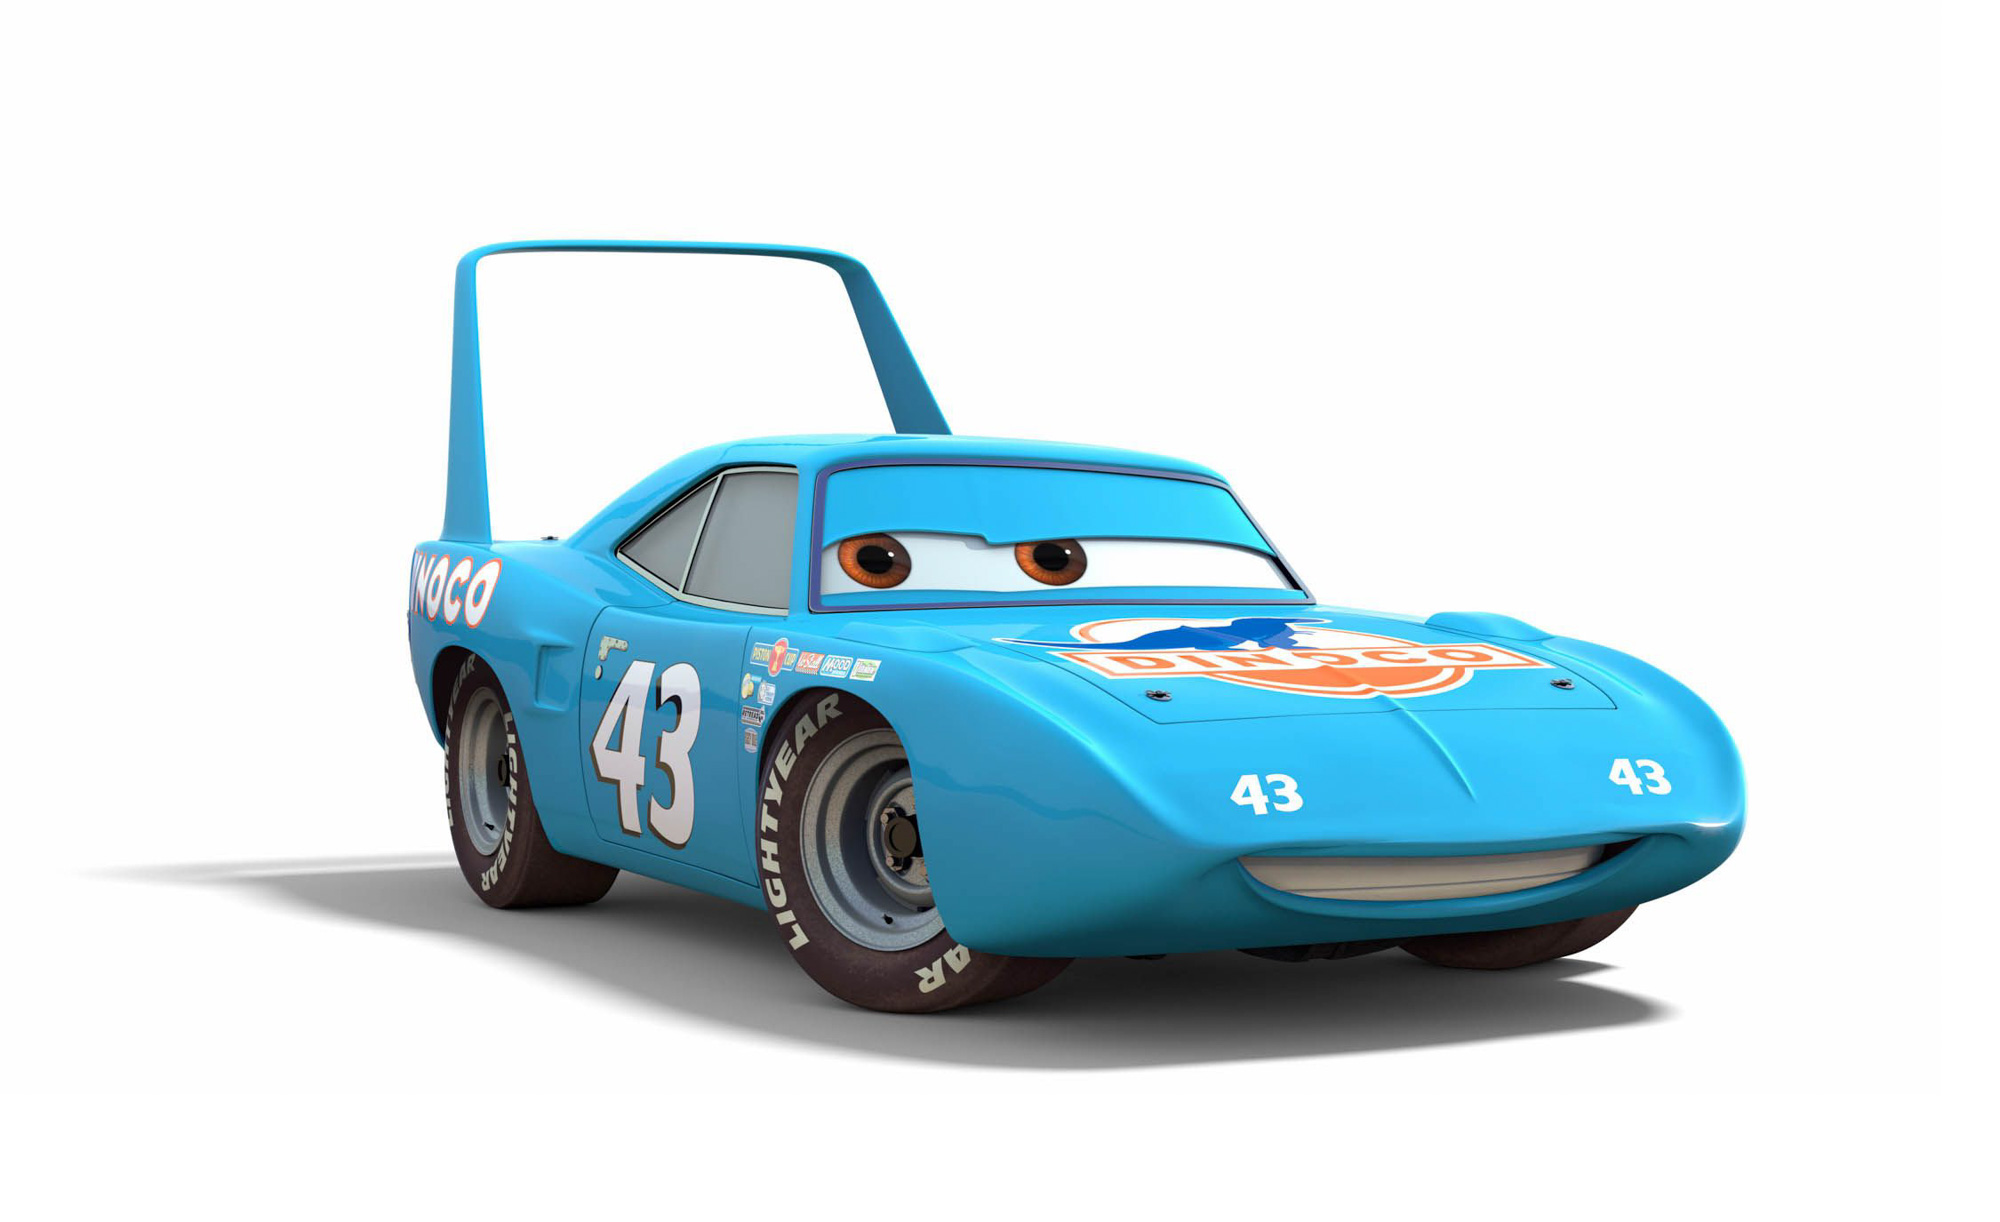 The King Plymouth Road Runner Superbird